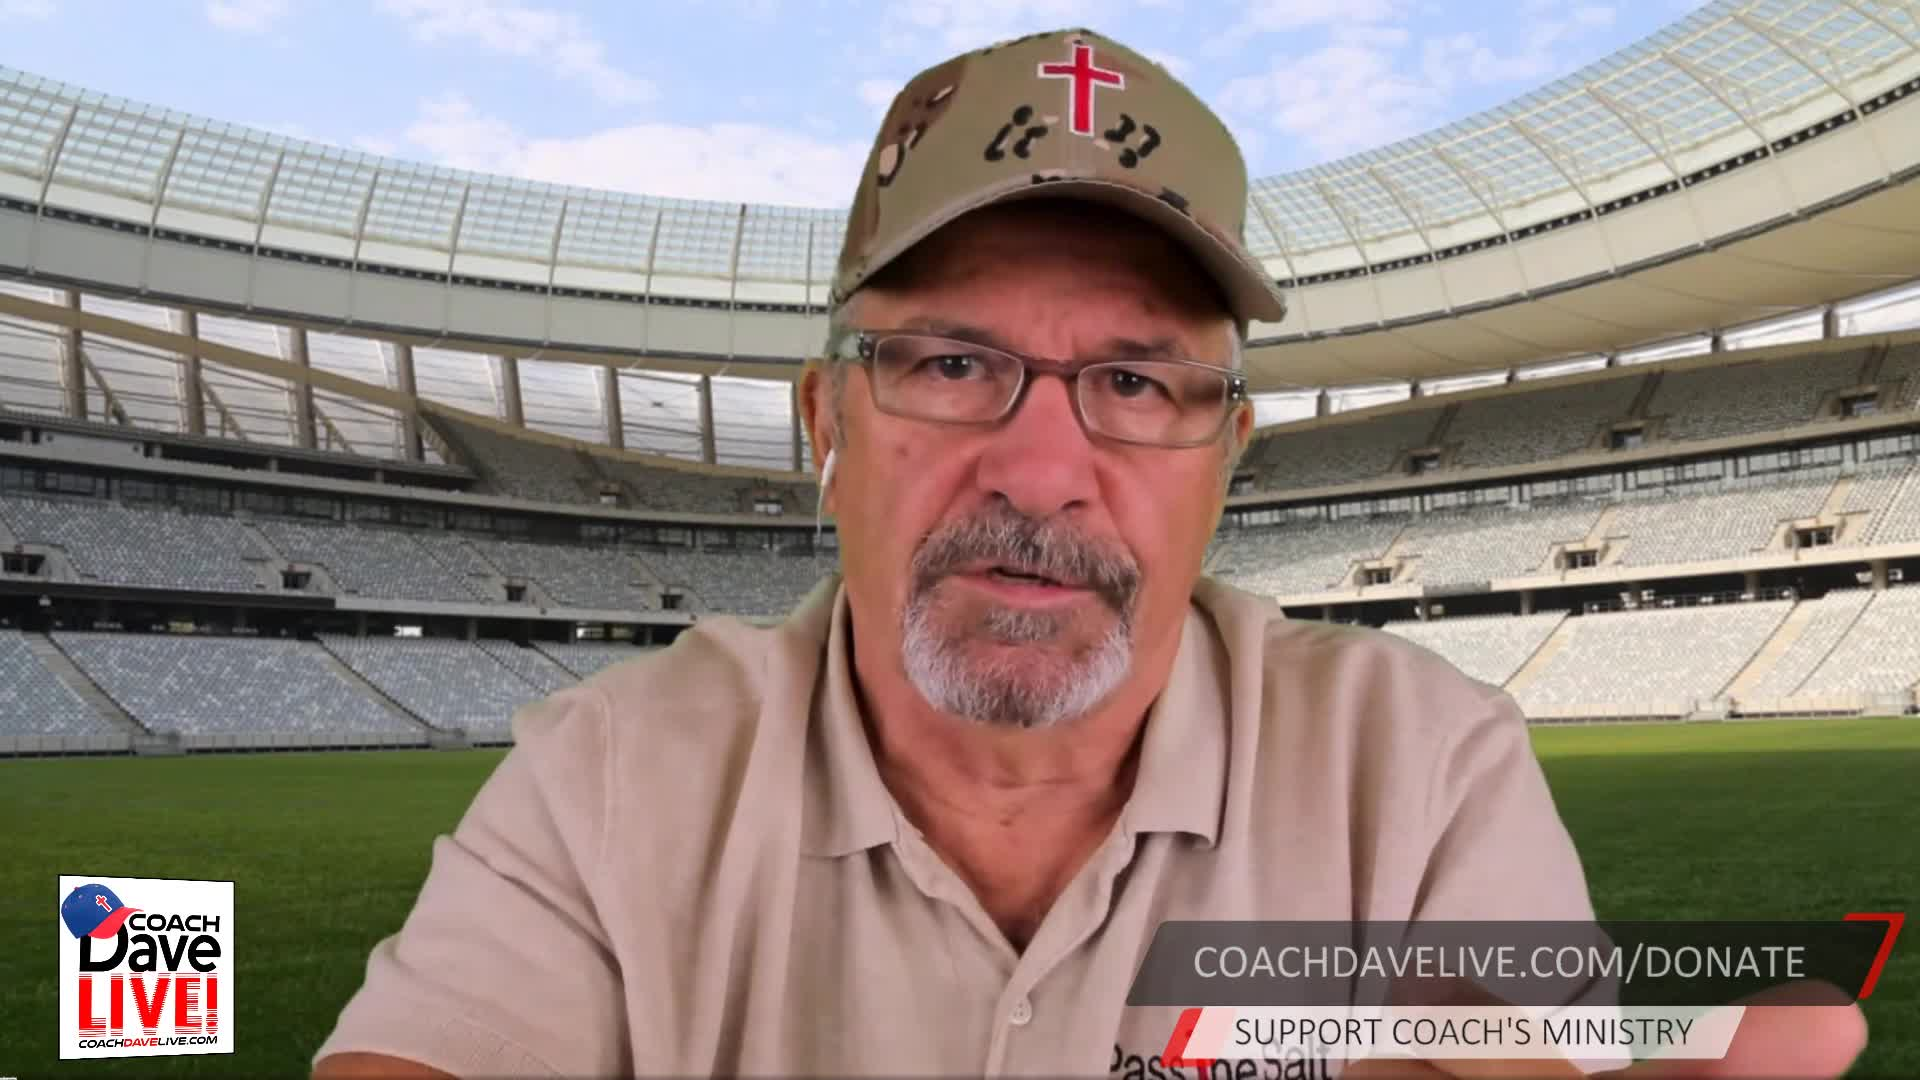 Coach Dave LIVE | 10-23-2020 | FOWL USE OF THE SWORD